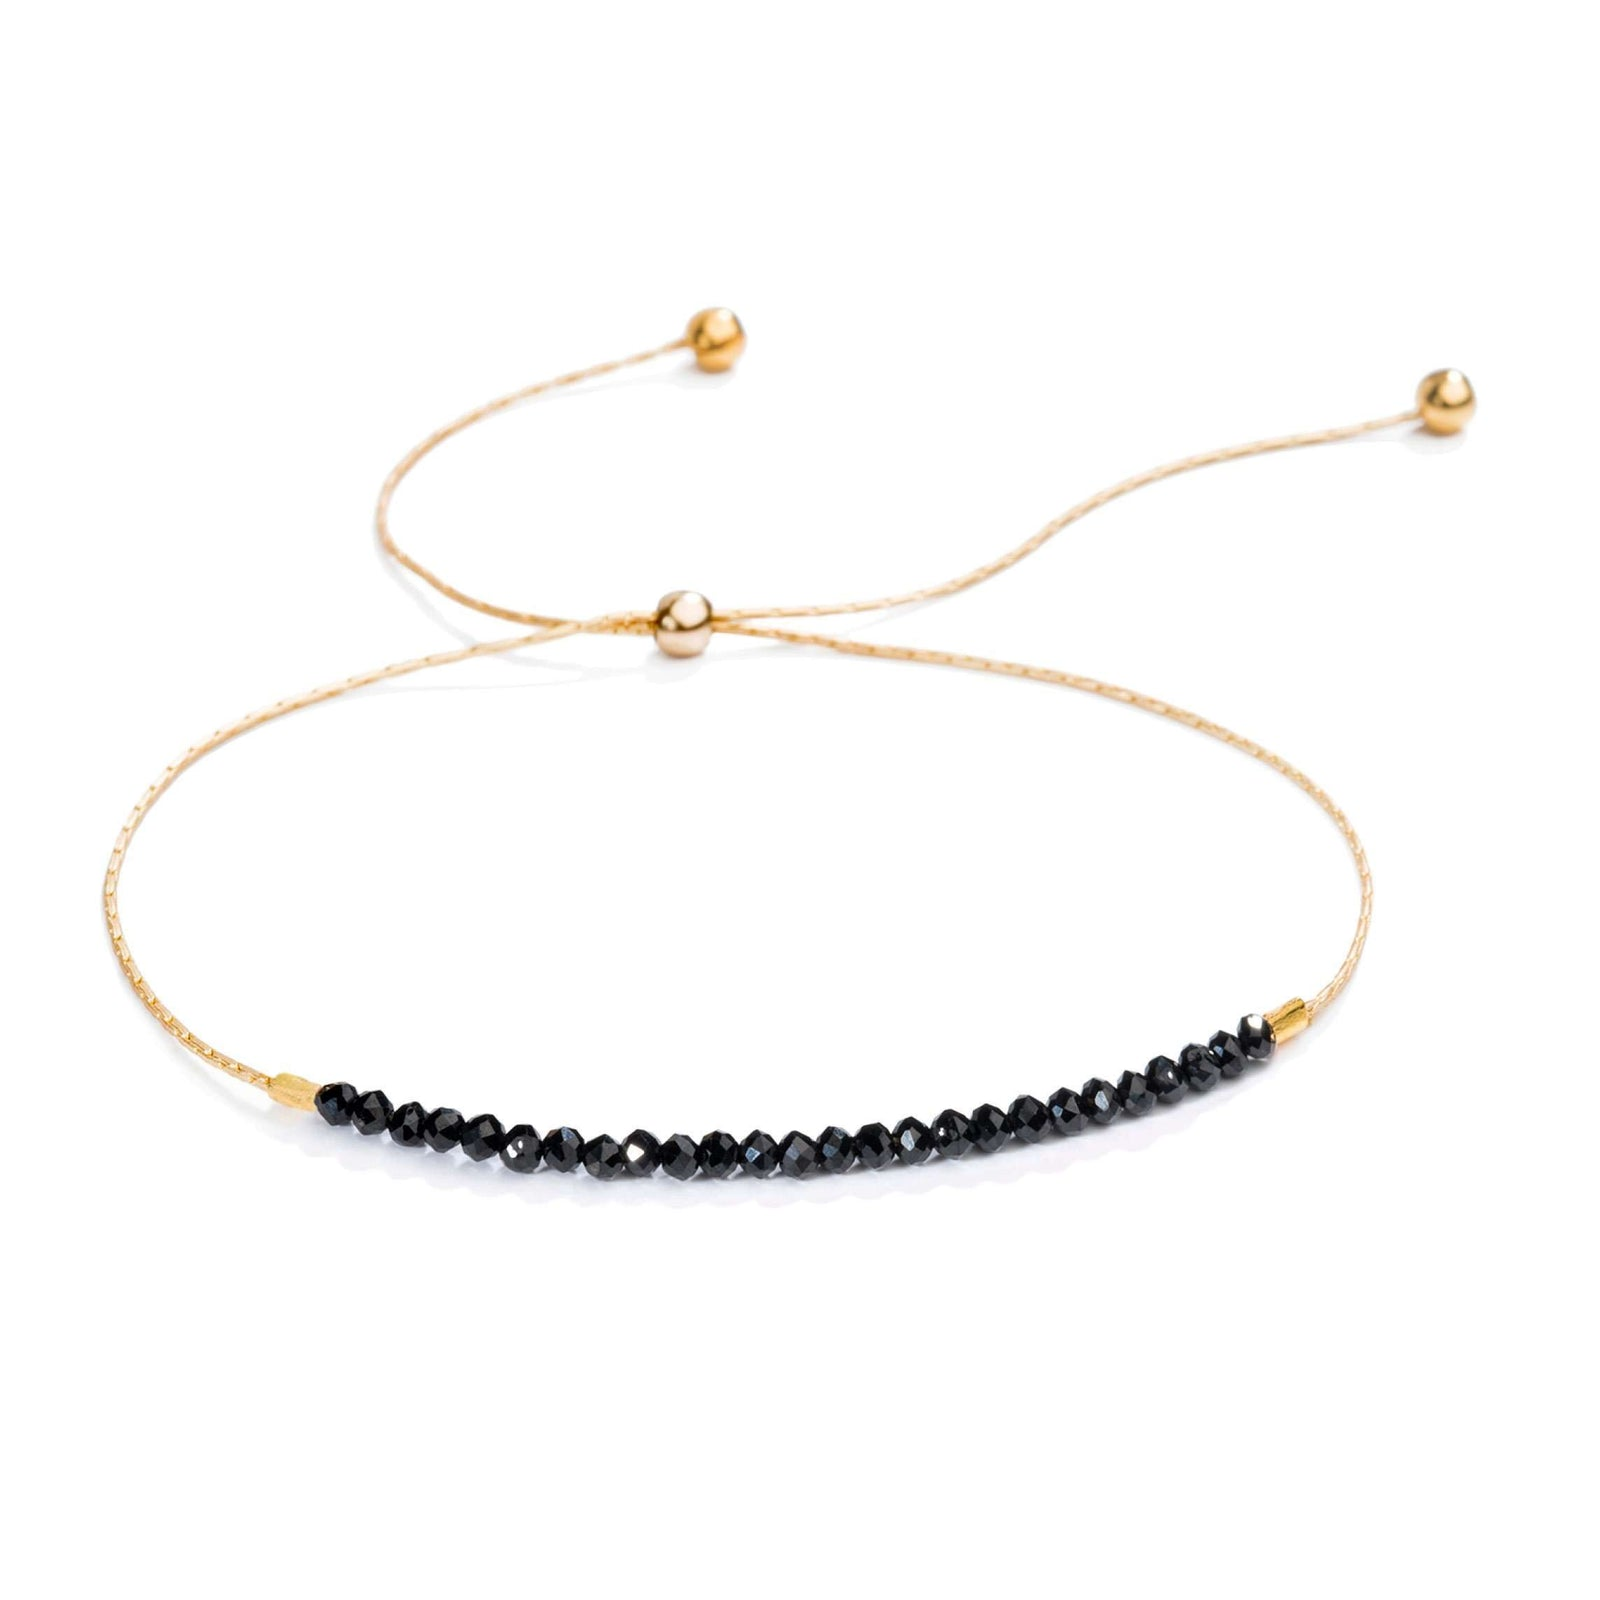 natasha-gemstone-bracelet-black-spinnelbracelets-jewelry